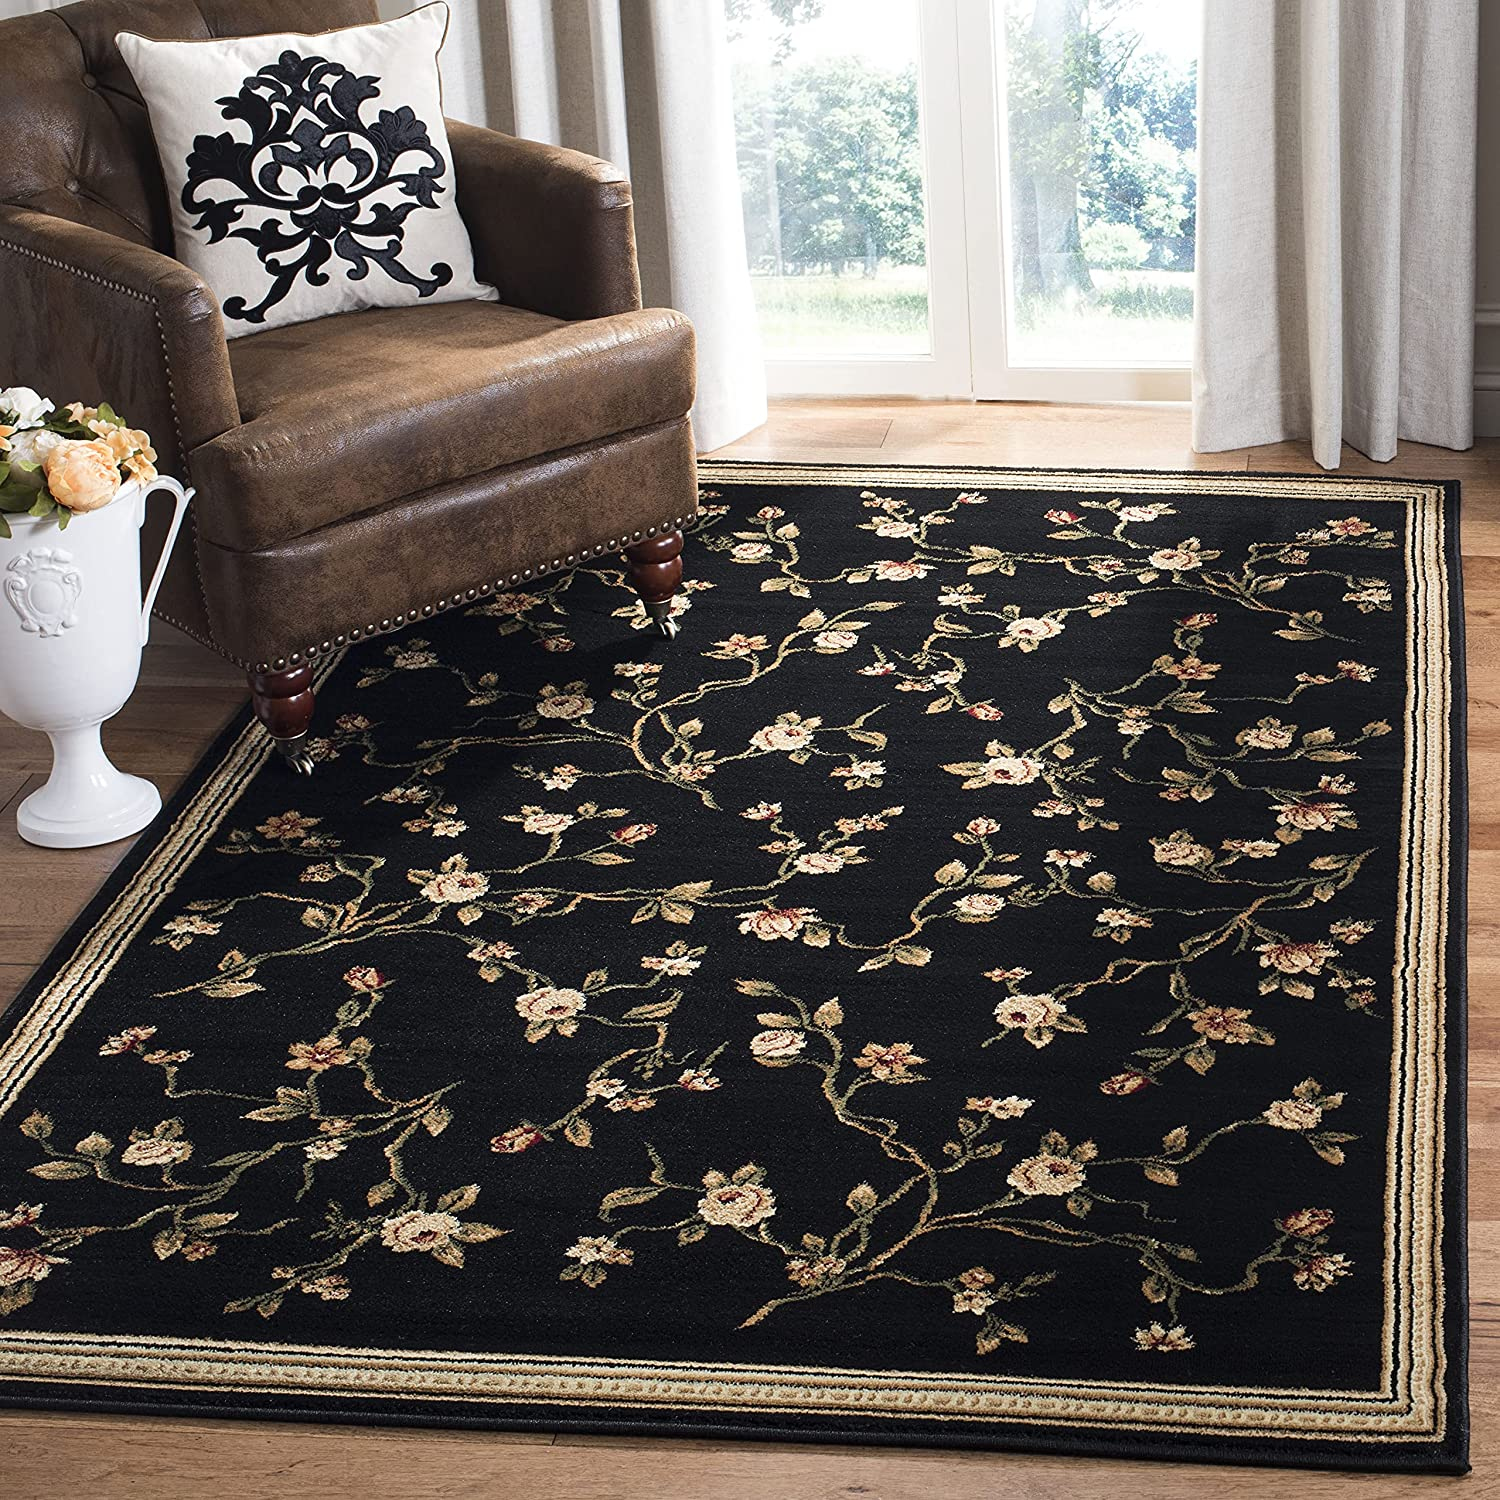 Safavieh Free shipping Lyndhurst Now free shipping Collection LNH220A Non-She Floral Traditional